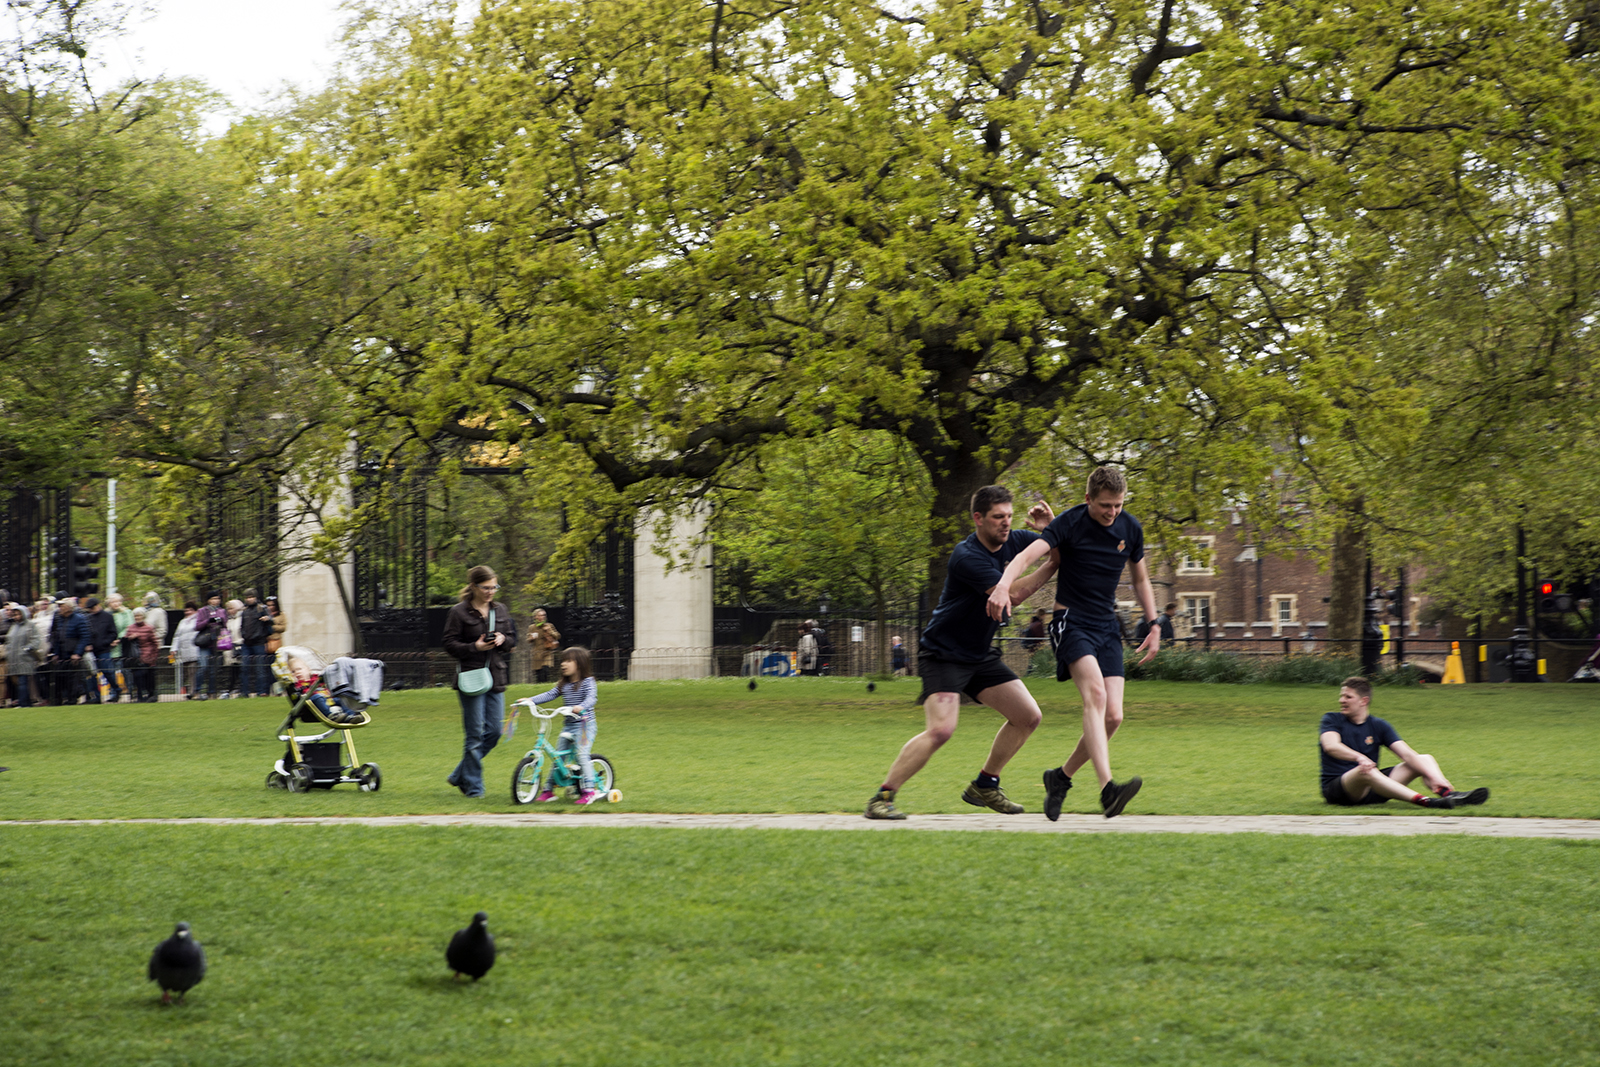 2017-04-17-Westminster_St-Jamess-Park_People_Spring-Two-pidgeons